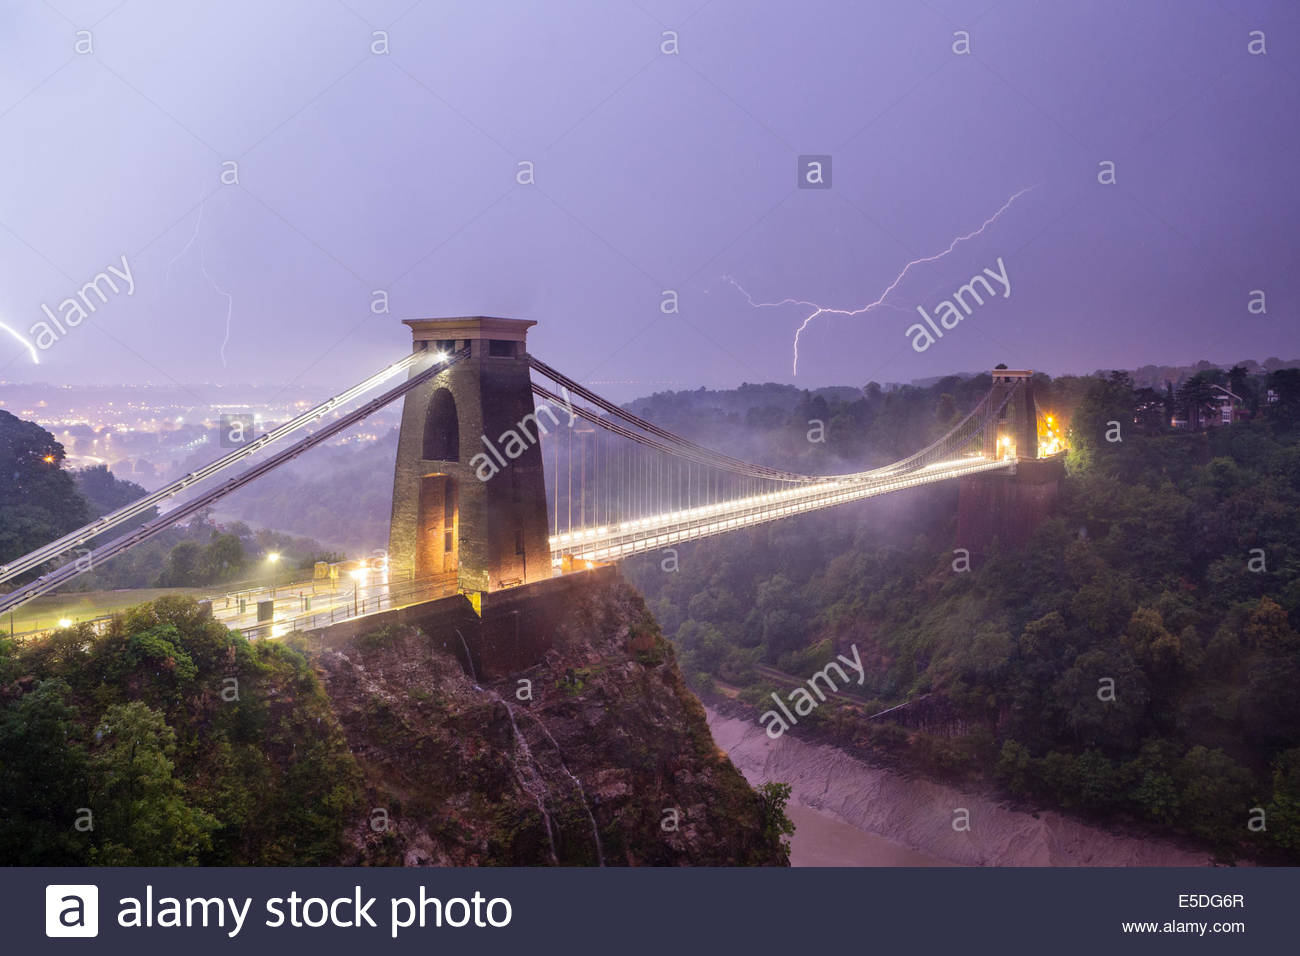 Lightning strikes Bristol, Clifton Suspension Bridge, Bristol, UK, 23/08/2013 - Stock Image